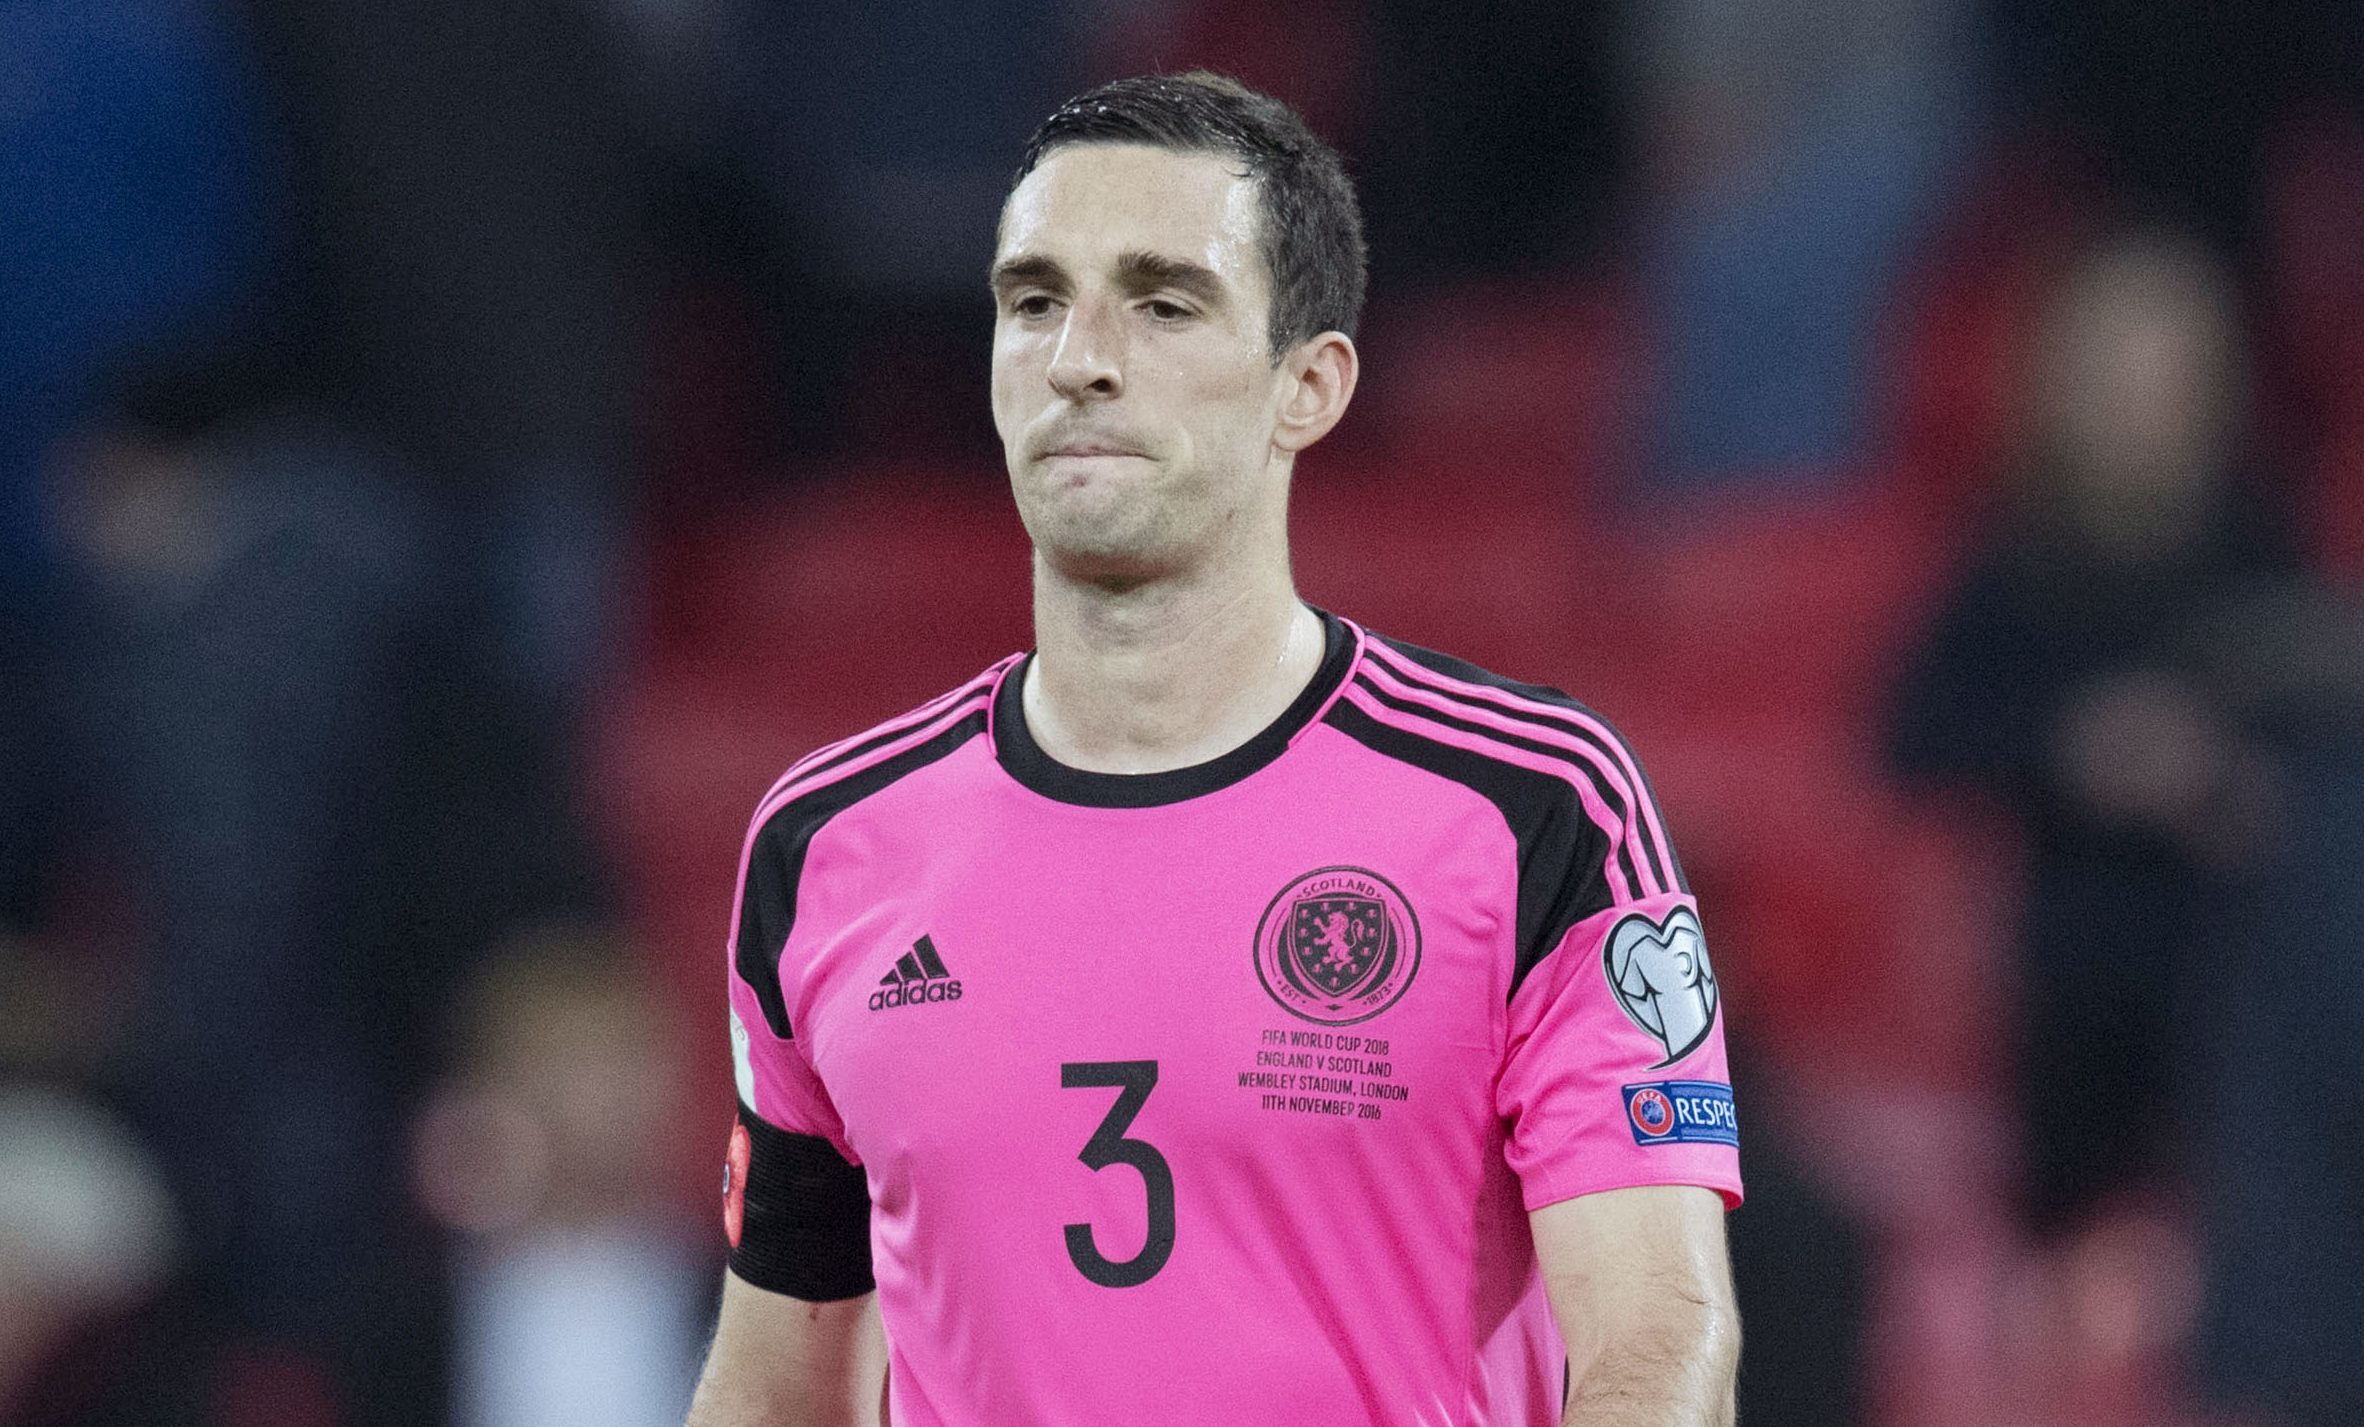 Scotland's Lee Wallace (SNS Group / Alan Harvey)